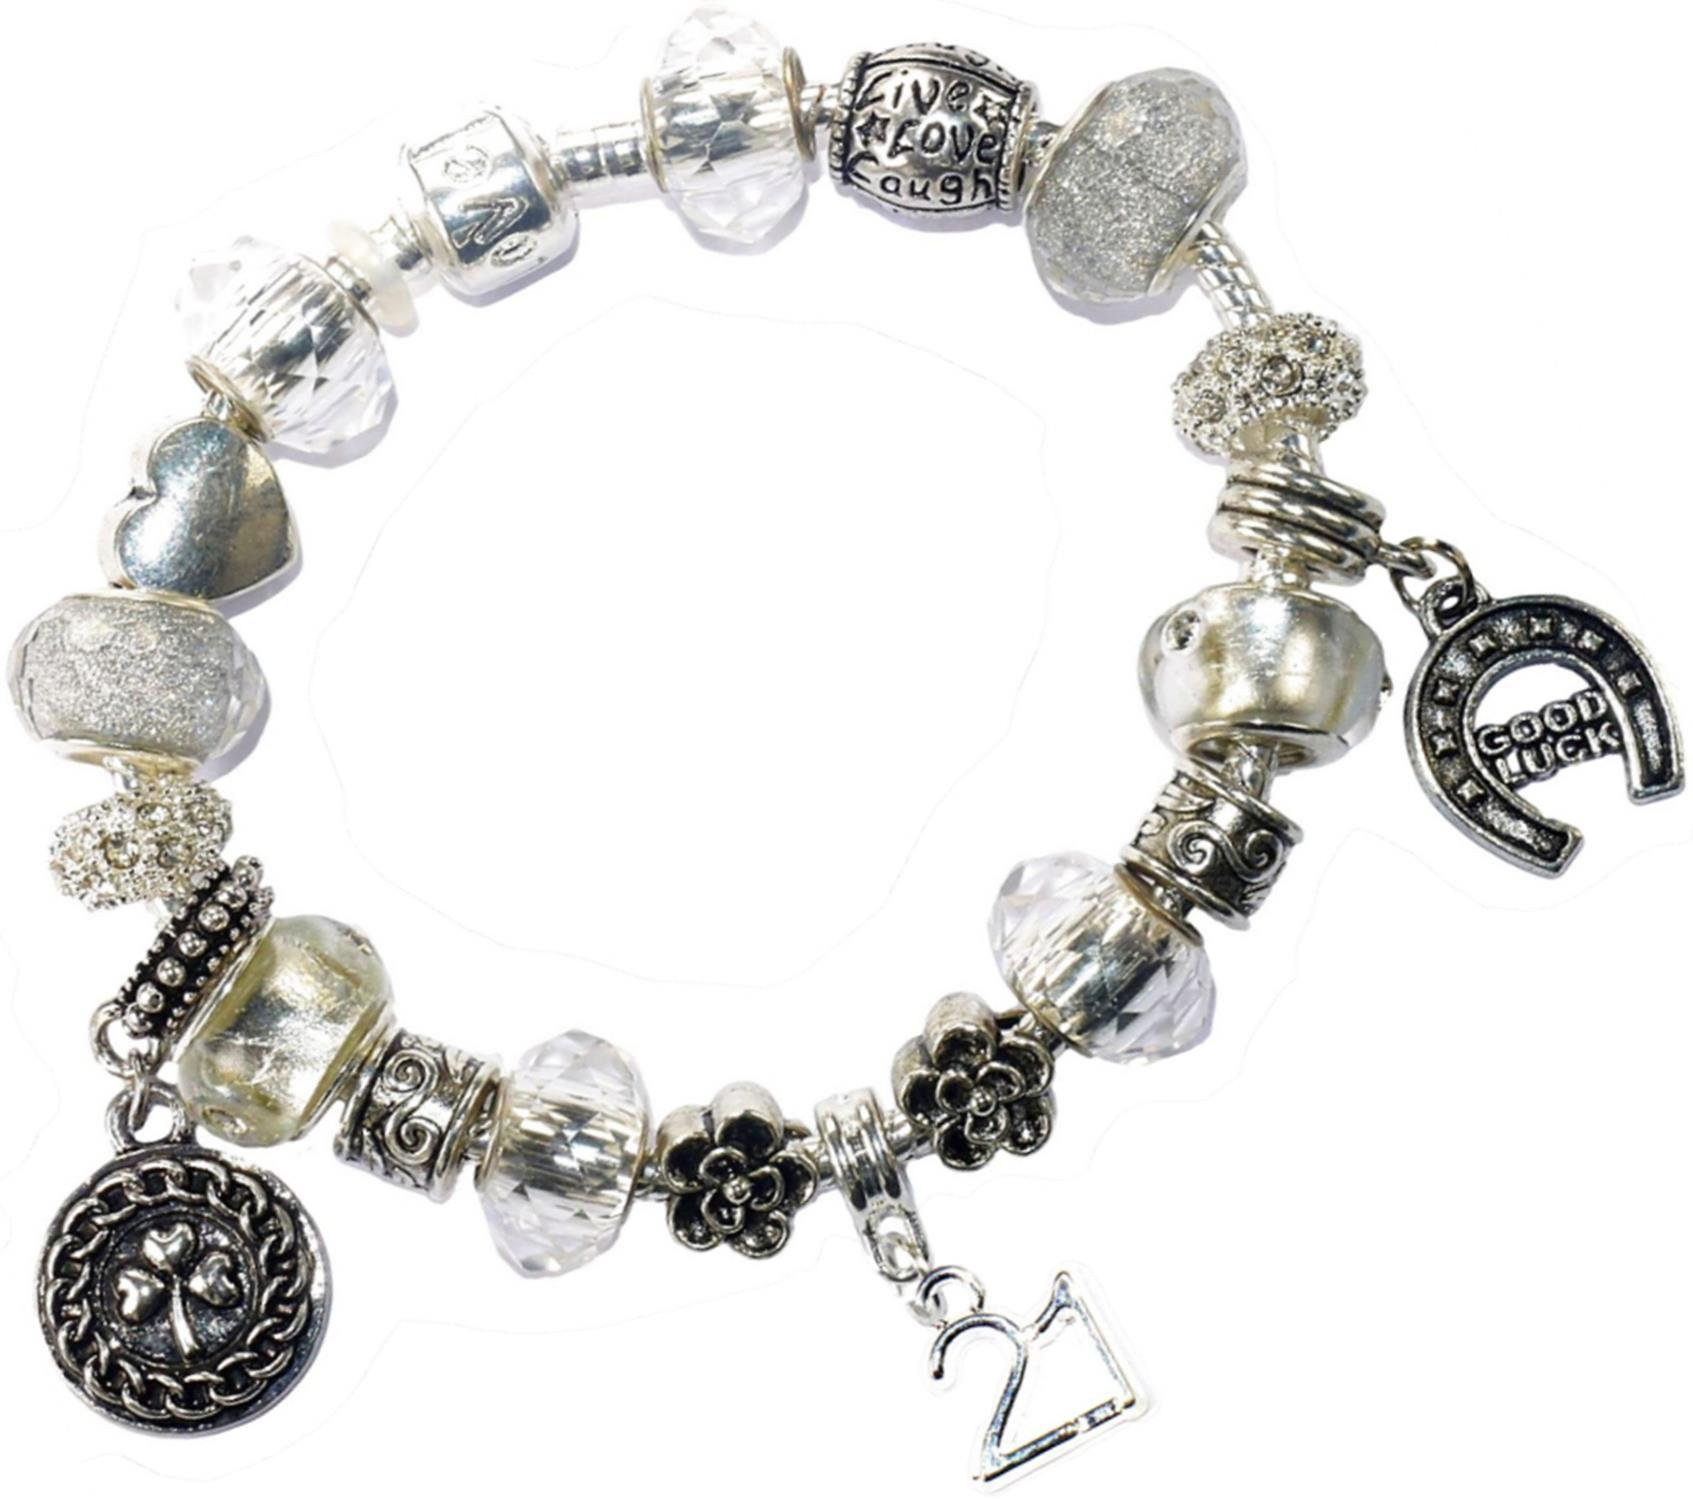 Charm Buddy 21St Birthday Good Luck Iced Silver Pandora Style Bracelet With Charms Gift Box Jewelry